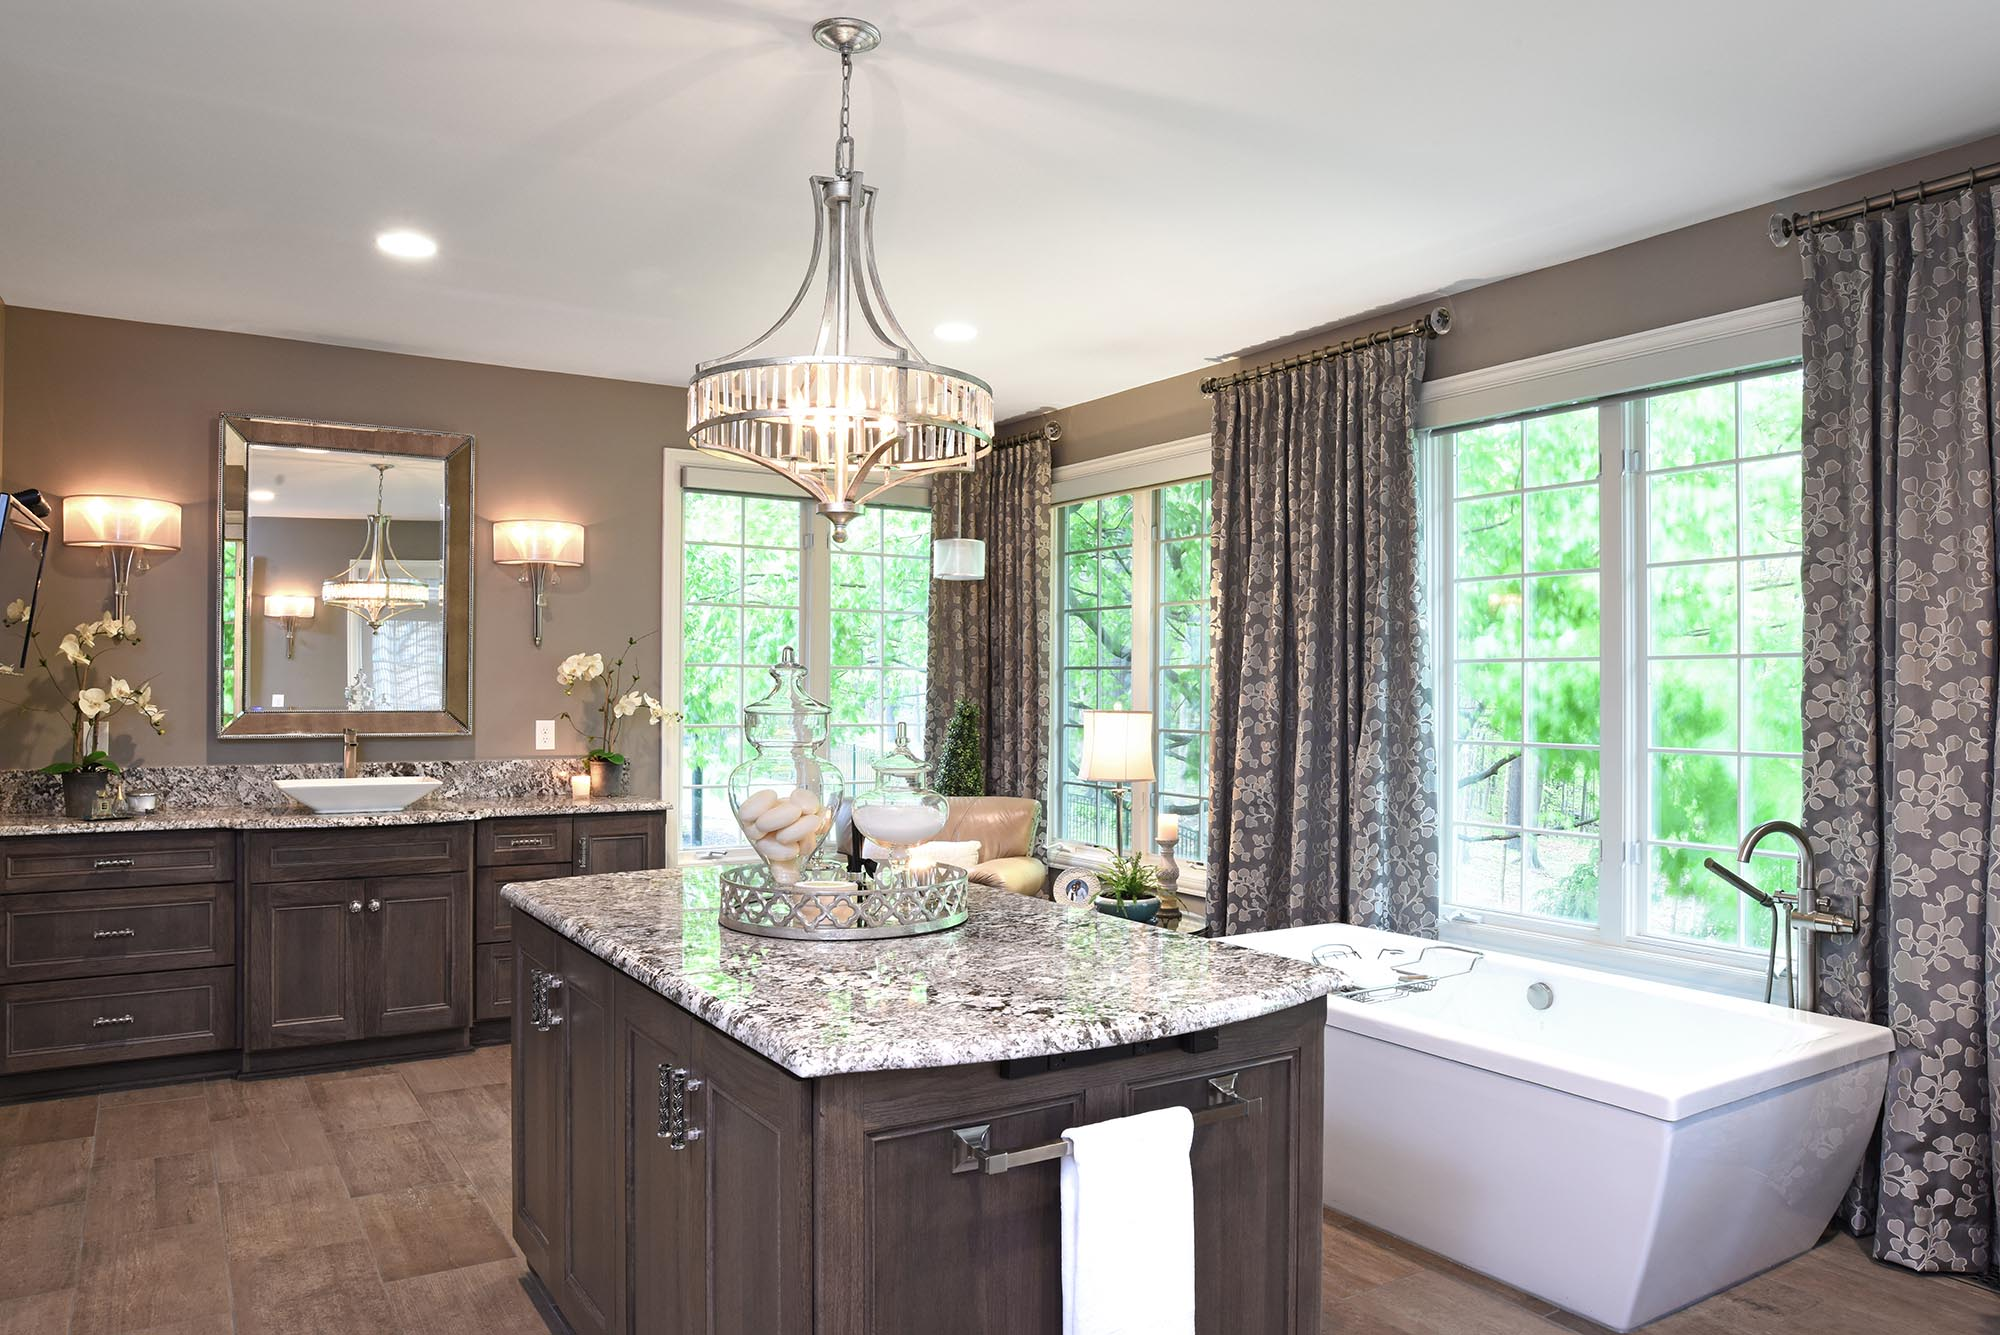 6 Luxury Bathroom Remodeling Ideas For Ultimate Relaxation Luxury Bathroom Remodeling Columbus Dave Fox